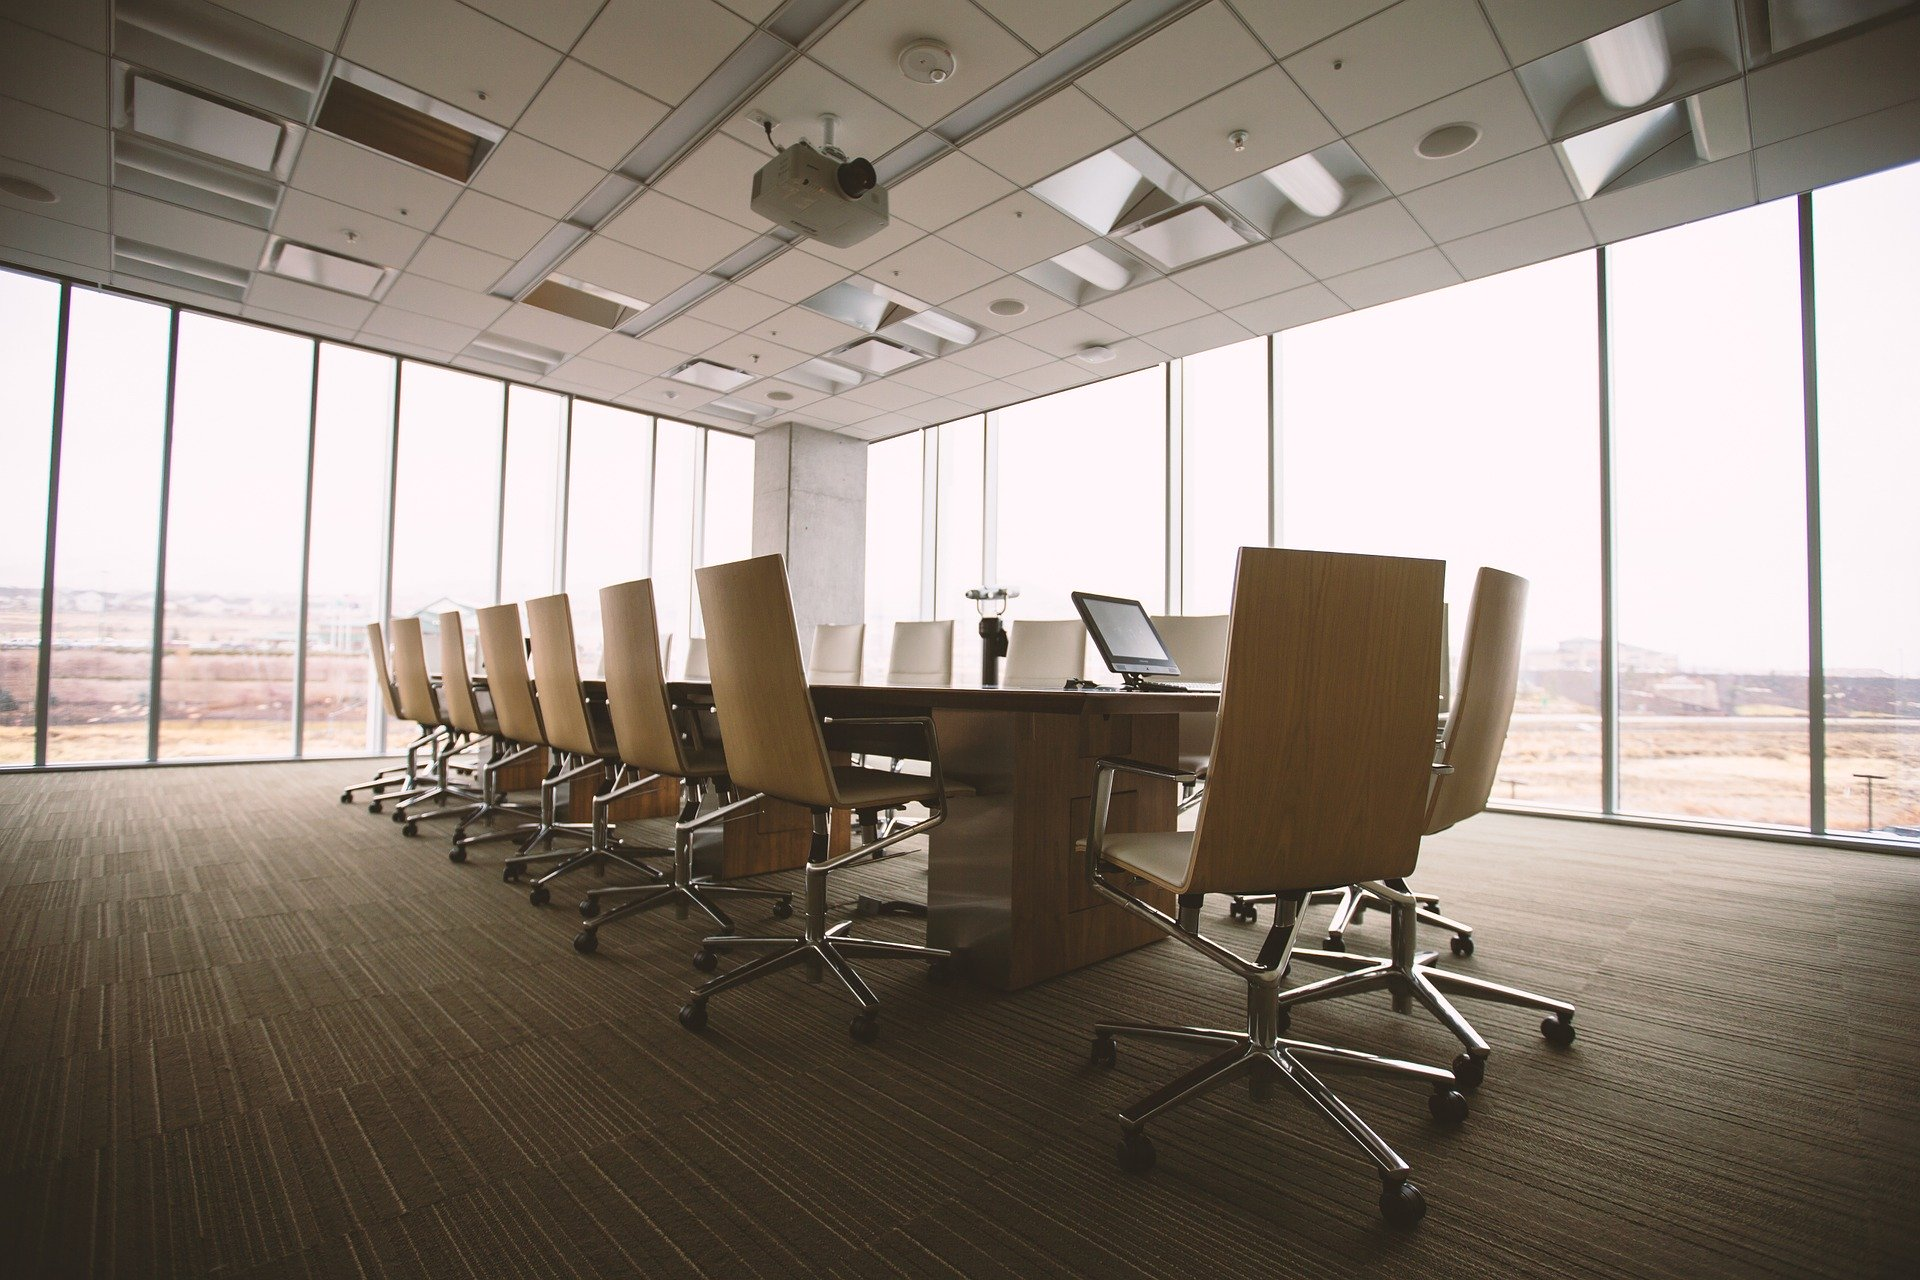 Professional Facilities Management in Grays